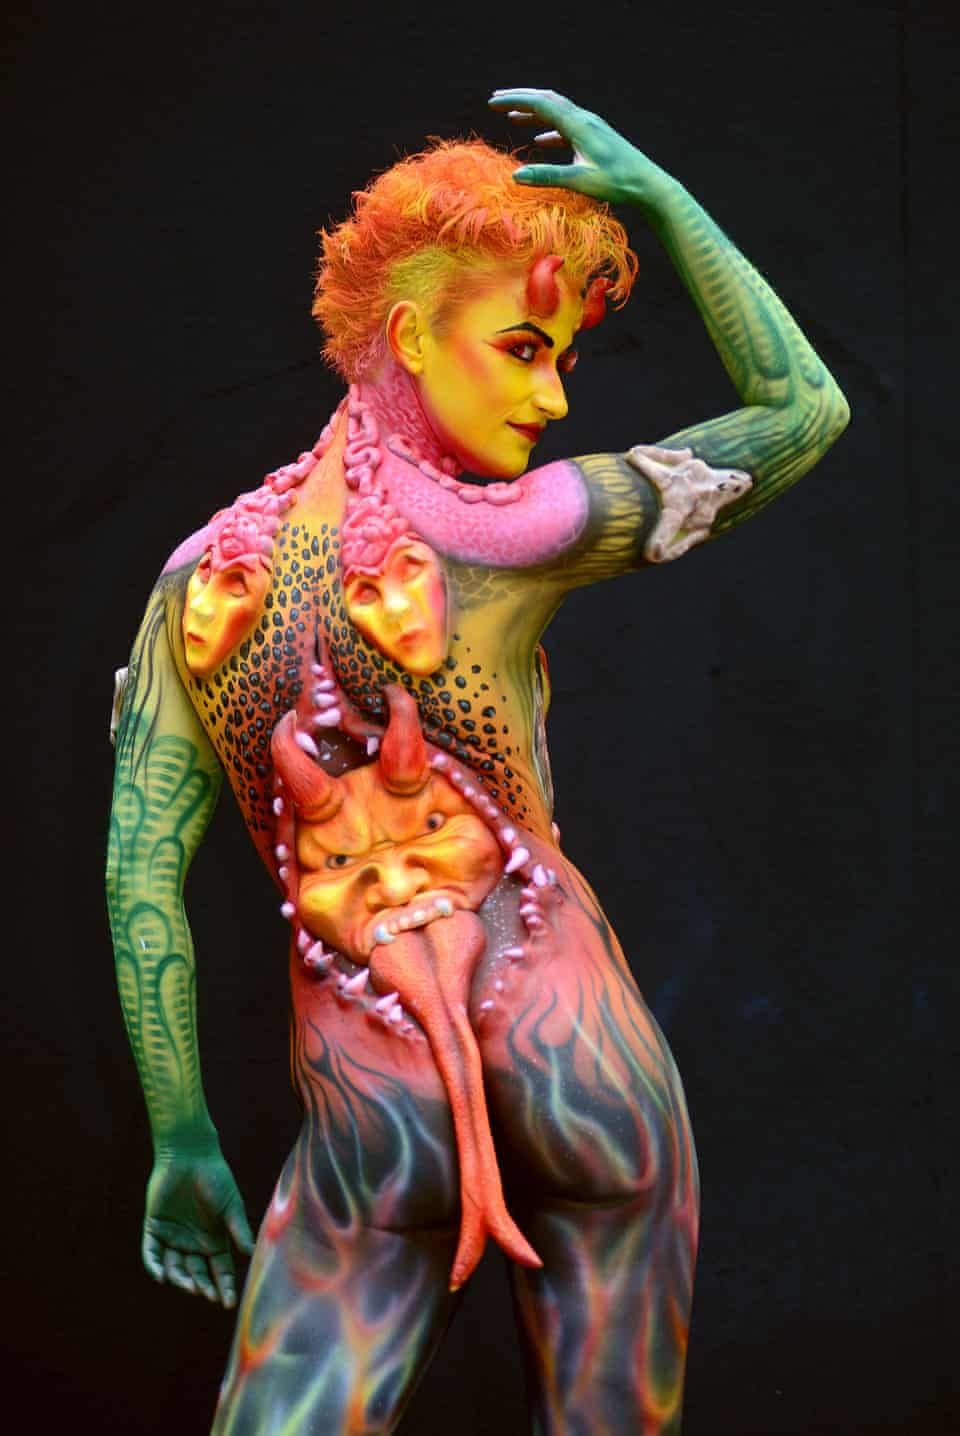 Body Painting Festival In Austria In Pictures Culture The Guardian In 2020 Bodypainting Festival World Bodypainting Festival Korperbemalung